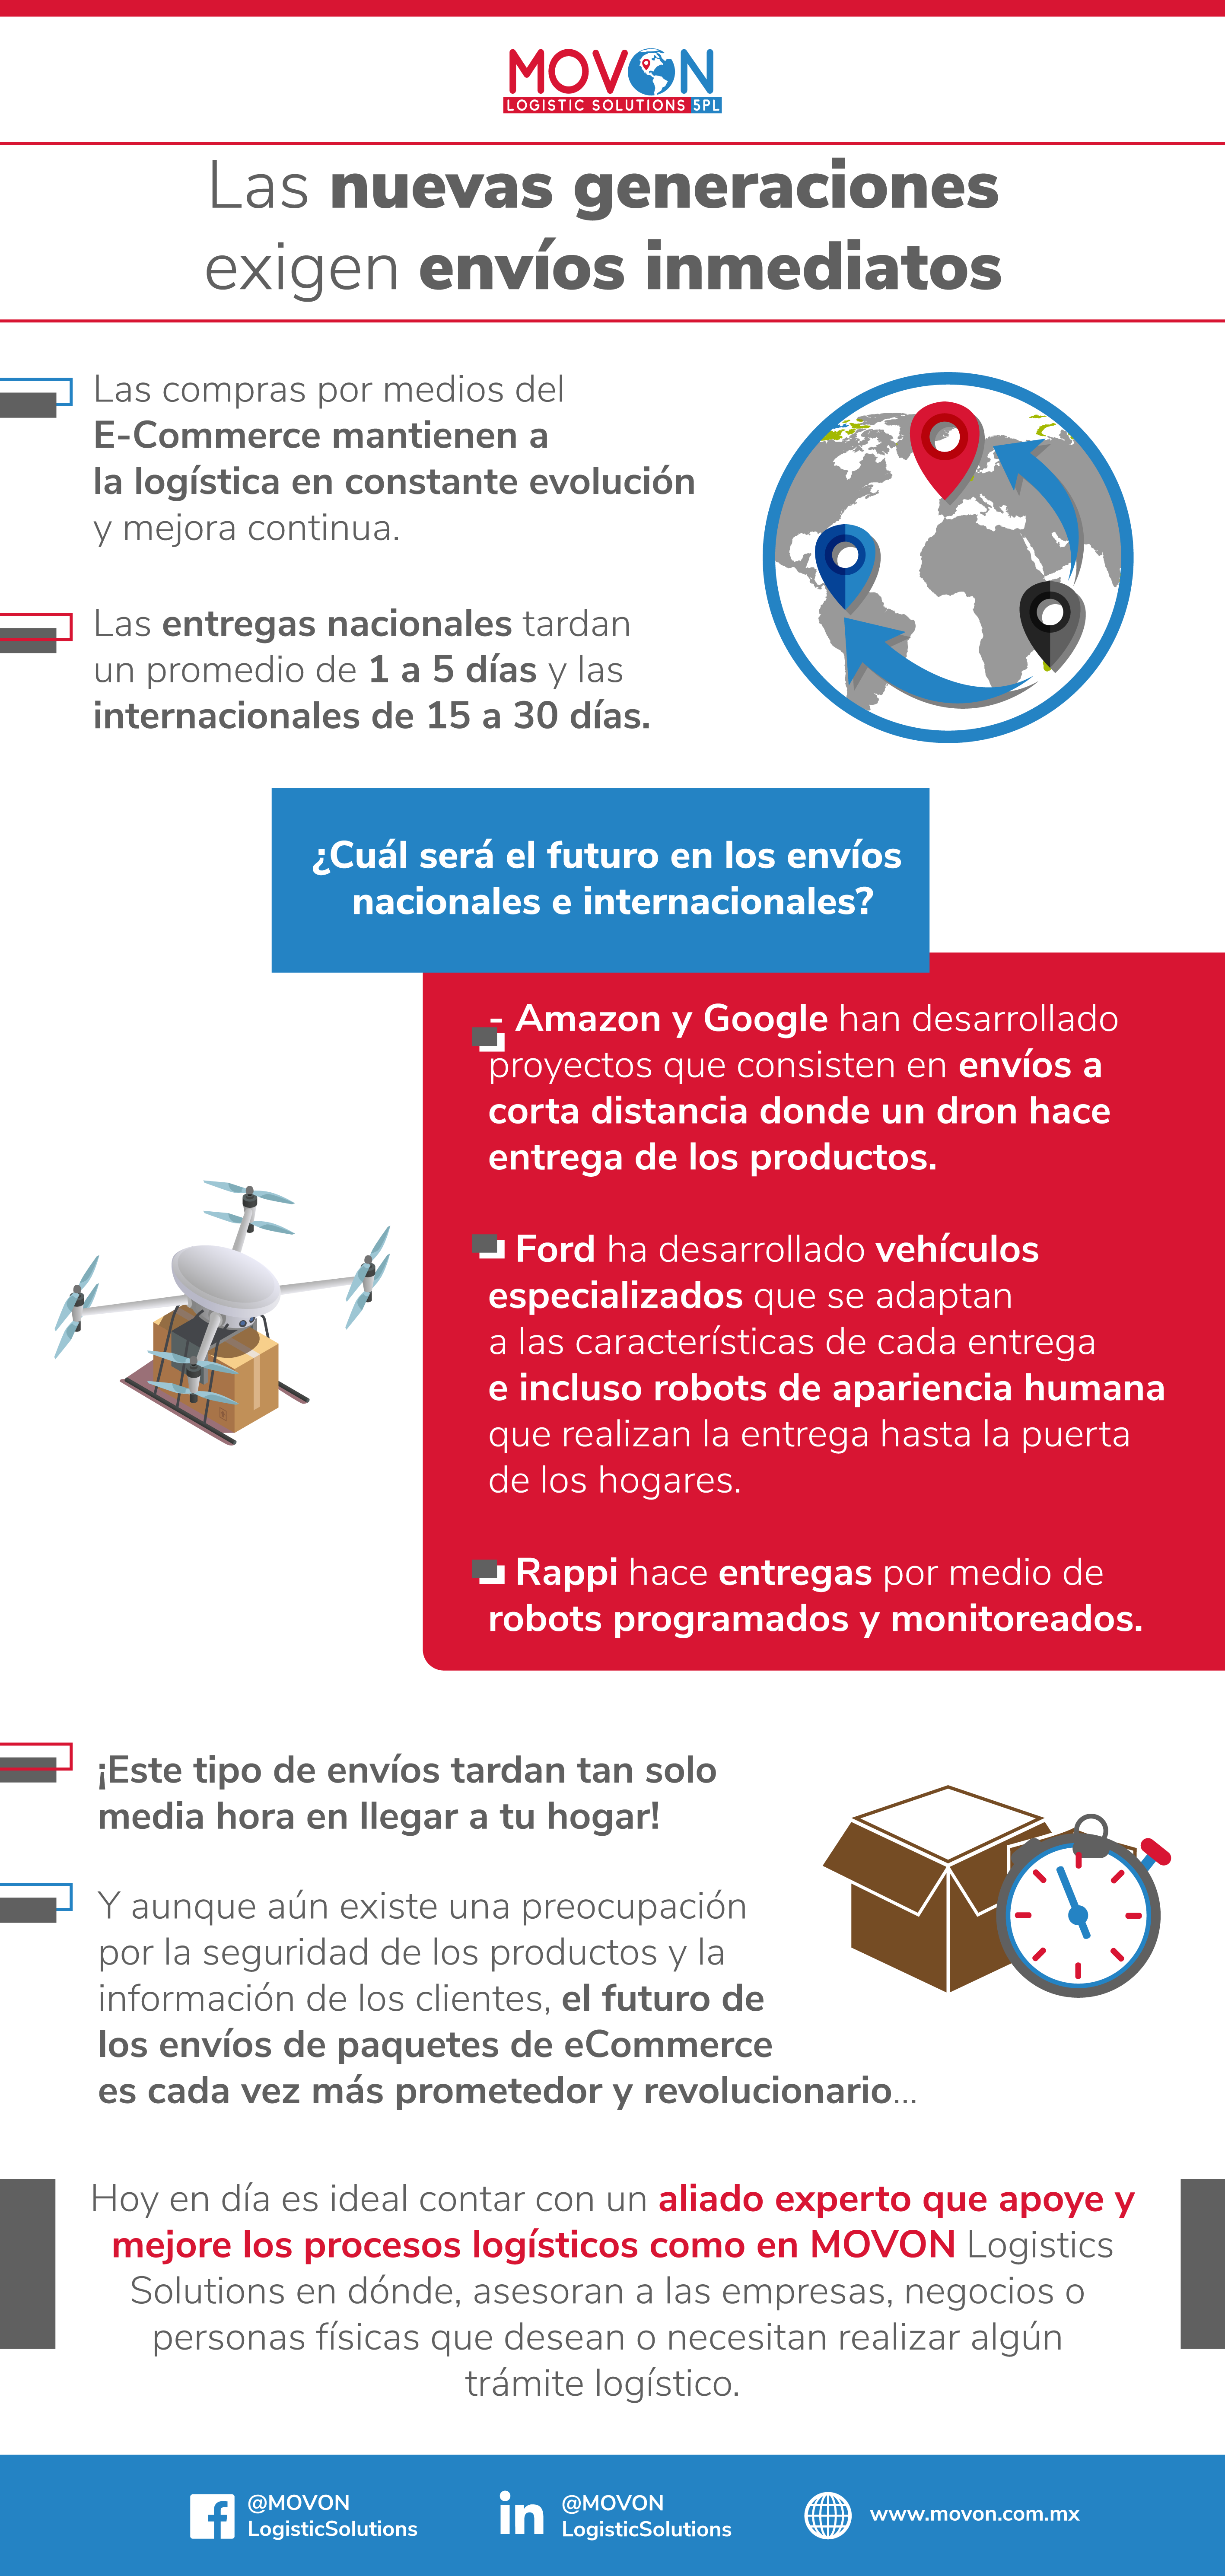 Movon Logistic Solutions